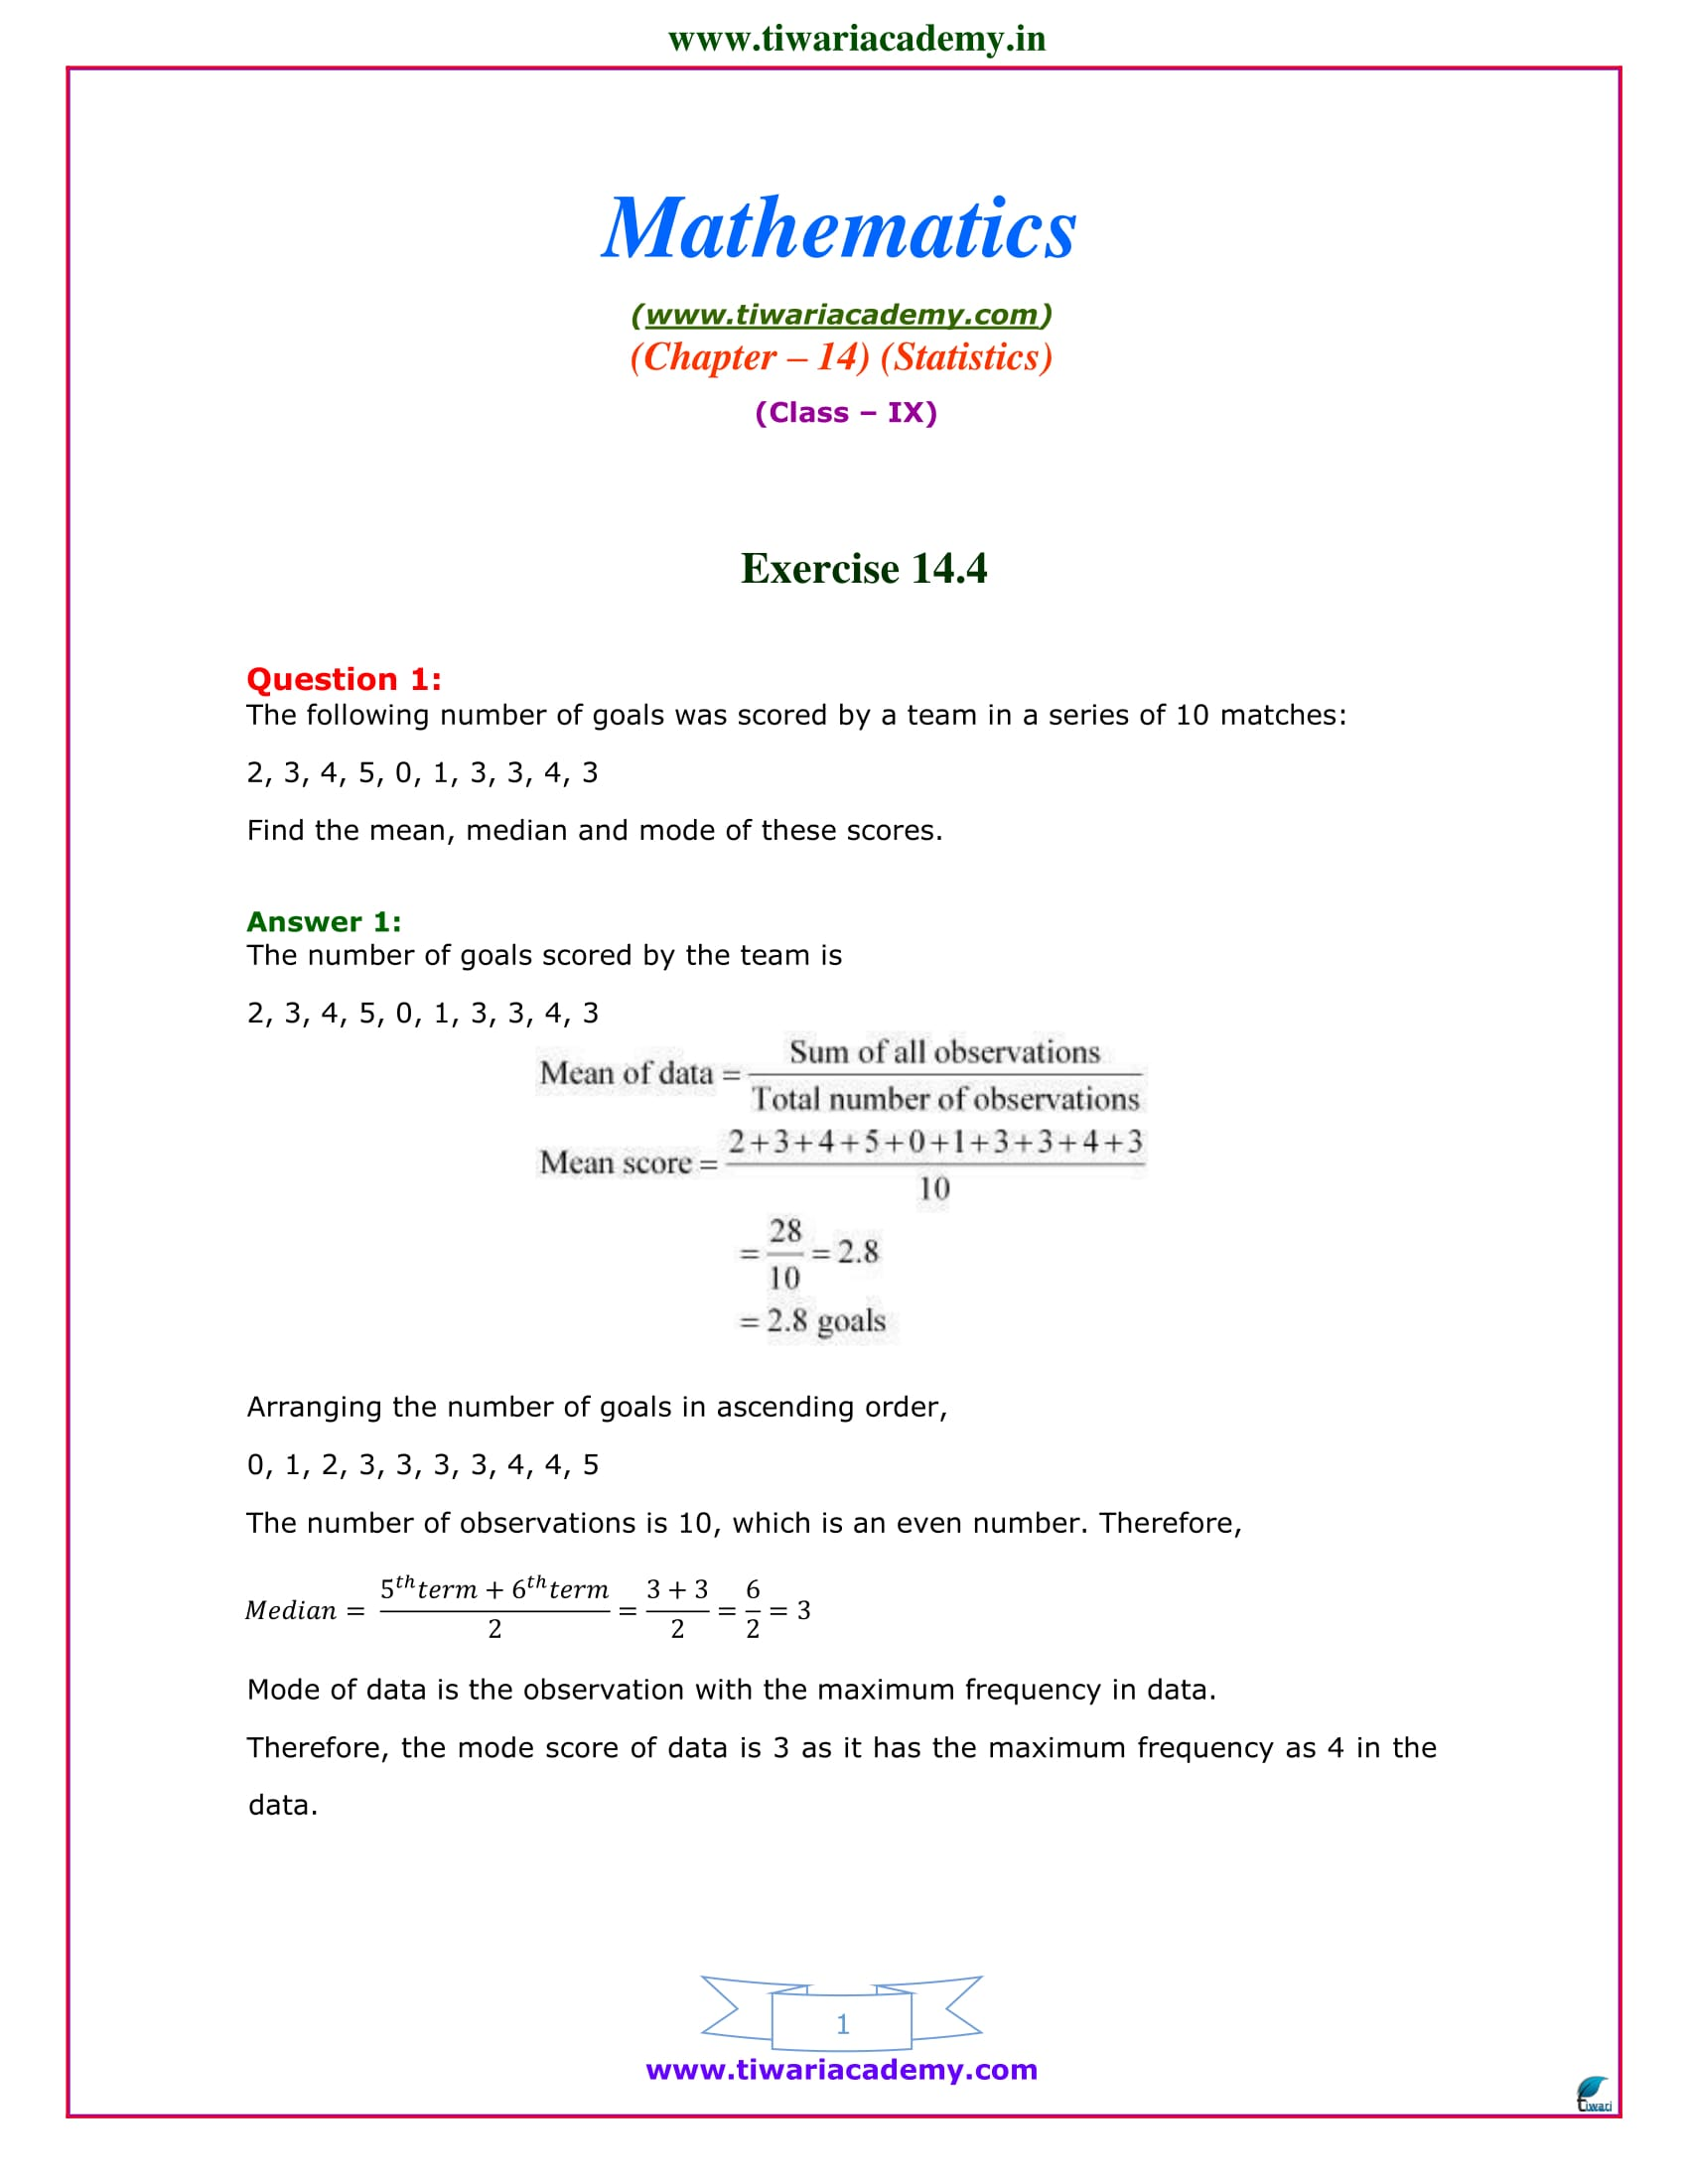 NCERT Solutions for Class 9 Maths Chapter 14 Exercise 14.4